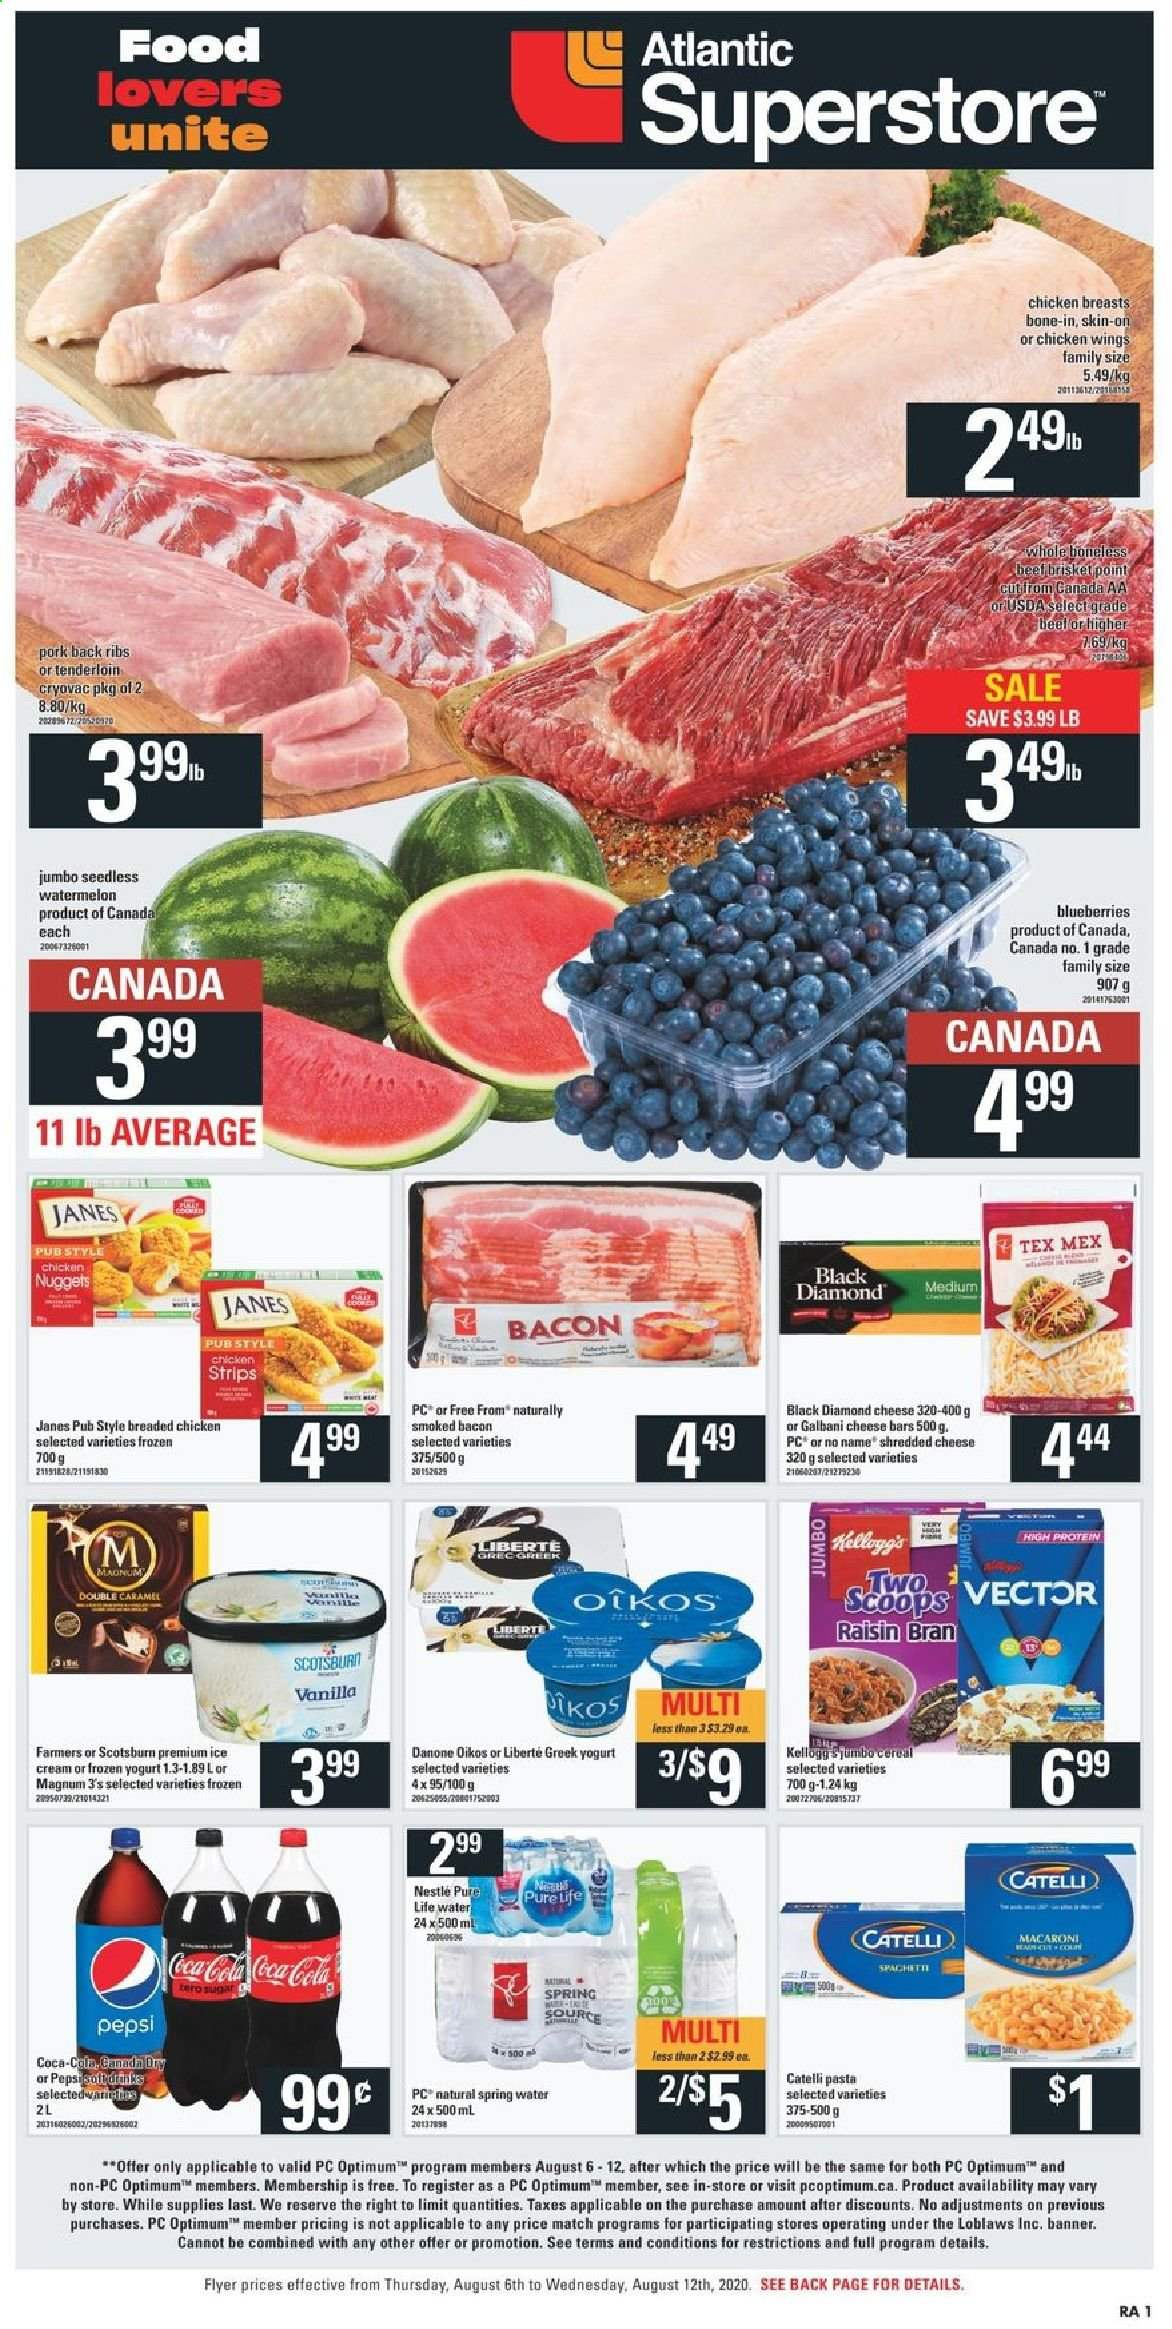 Atlantic Superstore Flyer - August 06, 2020 - August 12, 2020 - Sales products - bacon, beef meat, blueberries, bran, caramel, cereals, greek yogurt, magnum, nestlé, shredded cheese, spaghetti, spring water, sugar, watermelon, yogurt, ice cream, pork meat, protein, chicken, chicken breast, pepsi, chicken wings, tenderloin, cheese, macaroni, nuggets, cereal, pasta, danone, ribs. Page 1.